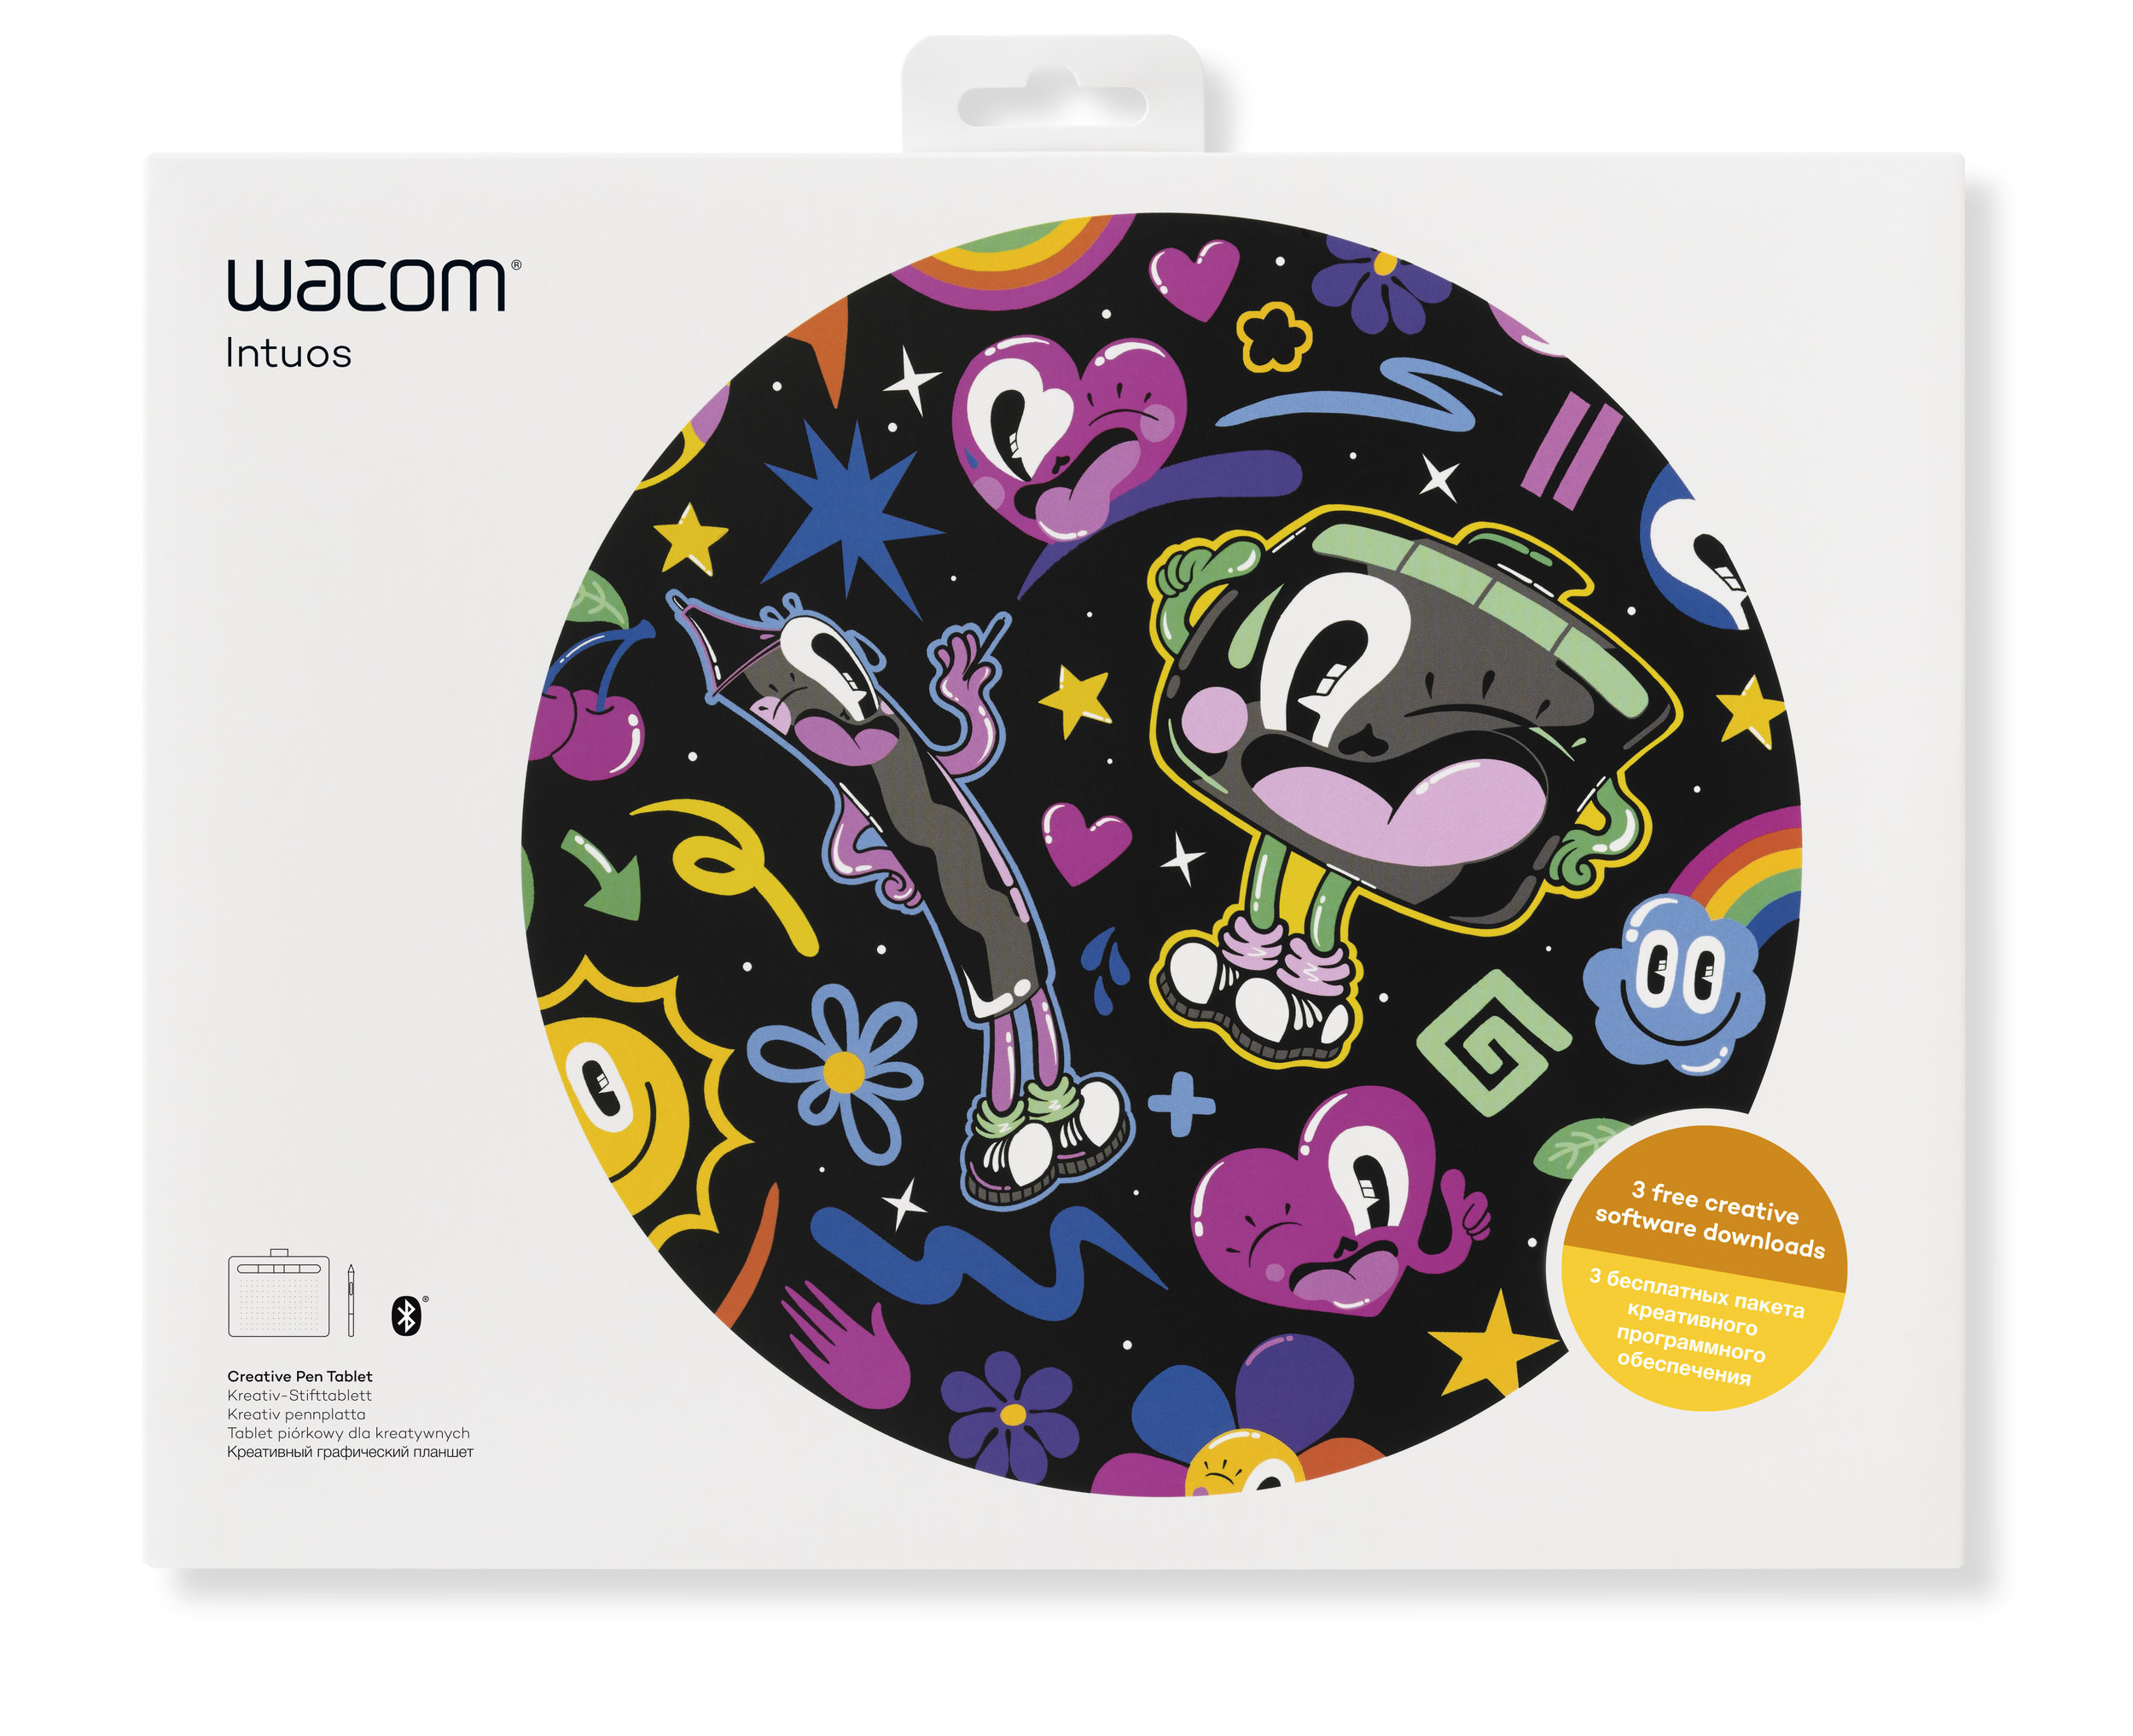 Special offer - With your purchase of any Wacom Intuos drawing tablet at any participating Young Art location, receive a free 1 hour digital lesson.